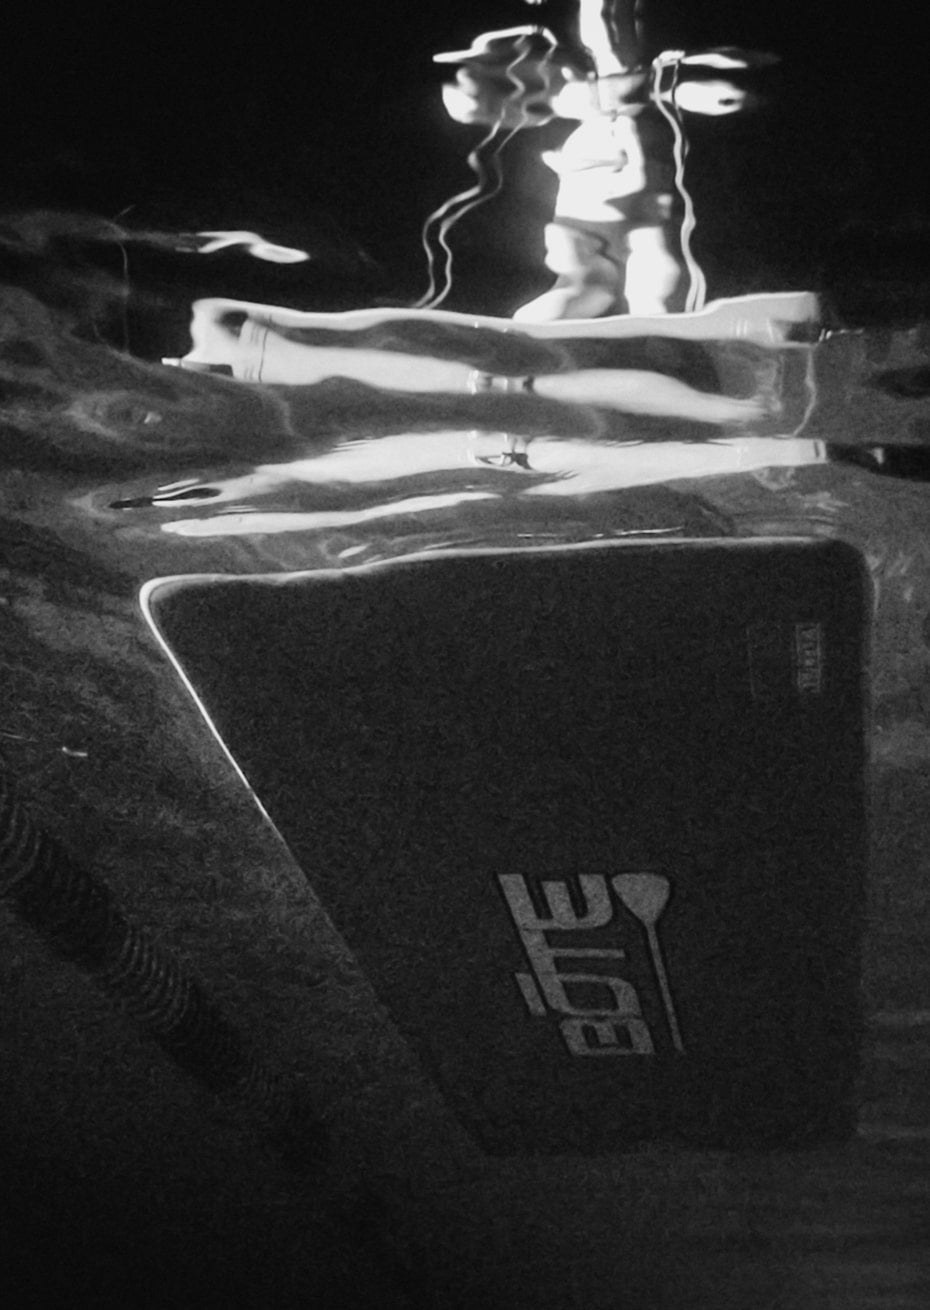 Underwater shot of BOTe inflatable Dock FX